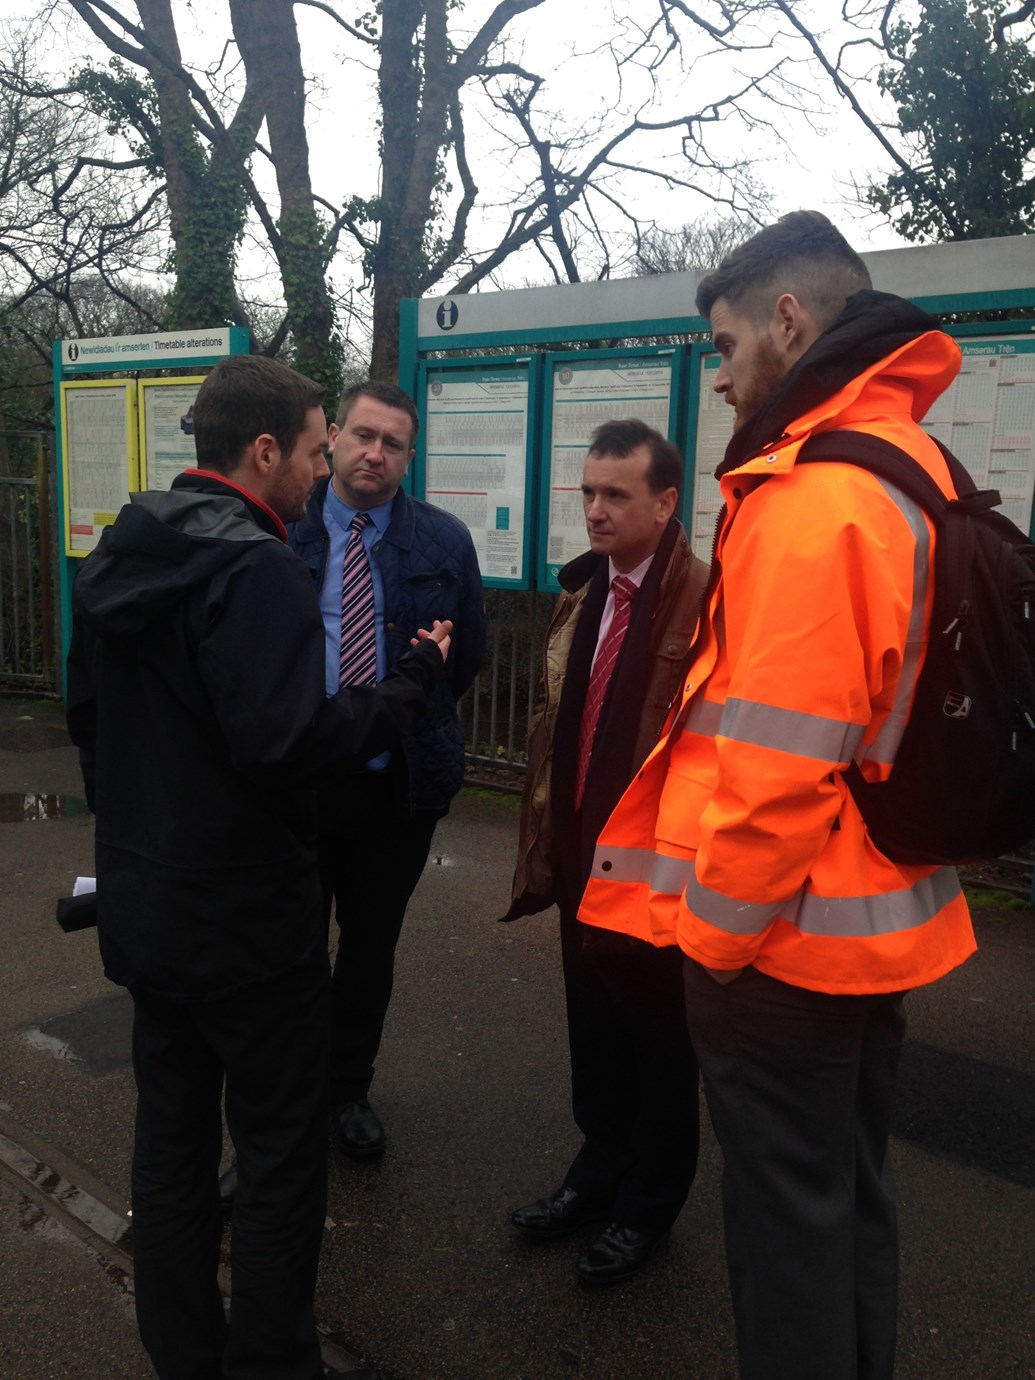 Alun Cairns tours stations ahead of work to improve accessibility for passengers in Wales: Wales Office Minister Alun Cairns with Dale Crutcher and Rhys Howells from Network Rail and Adrian Carrington from Arriva Trains Wales discussing how Access for All projects will improve accessibility for passengers.